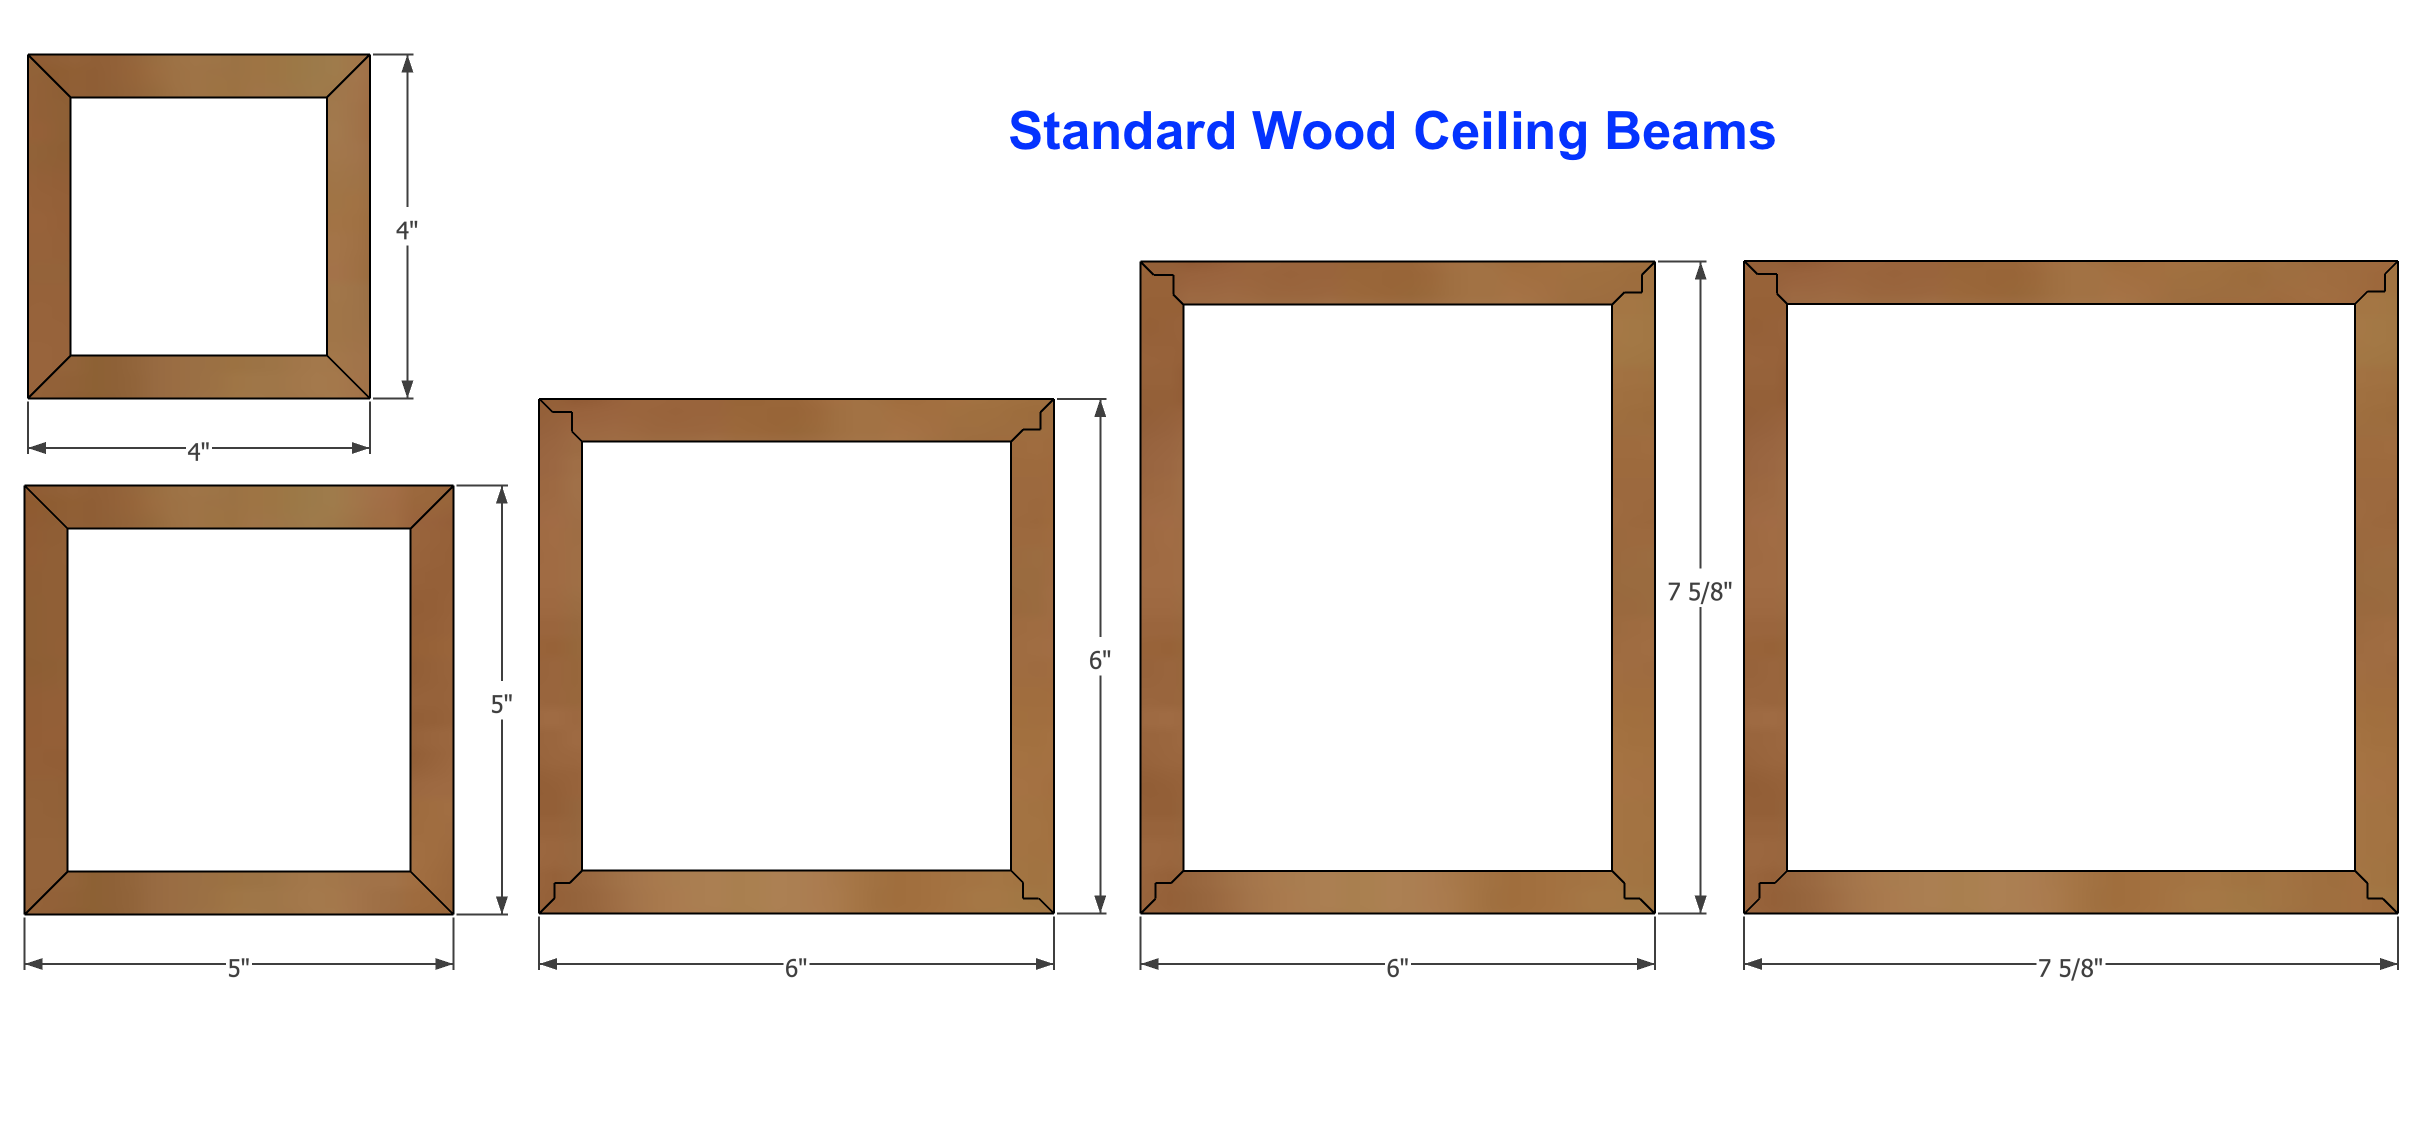 Smooth, Wood Ceiling Beam